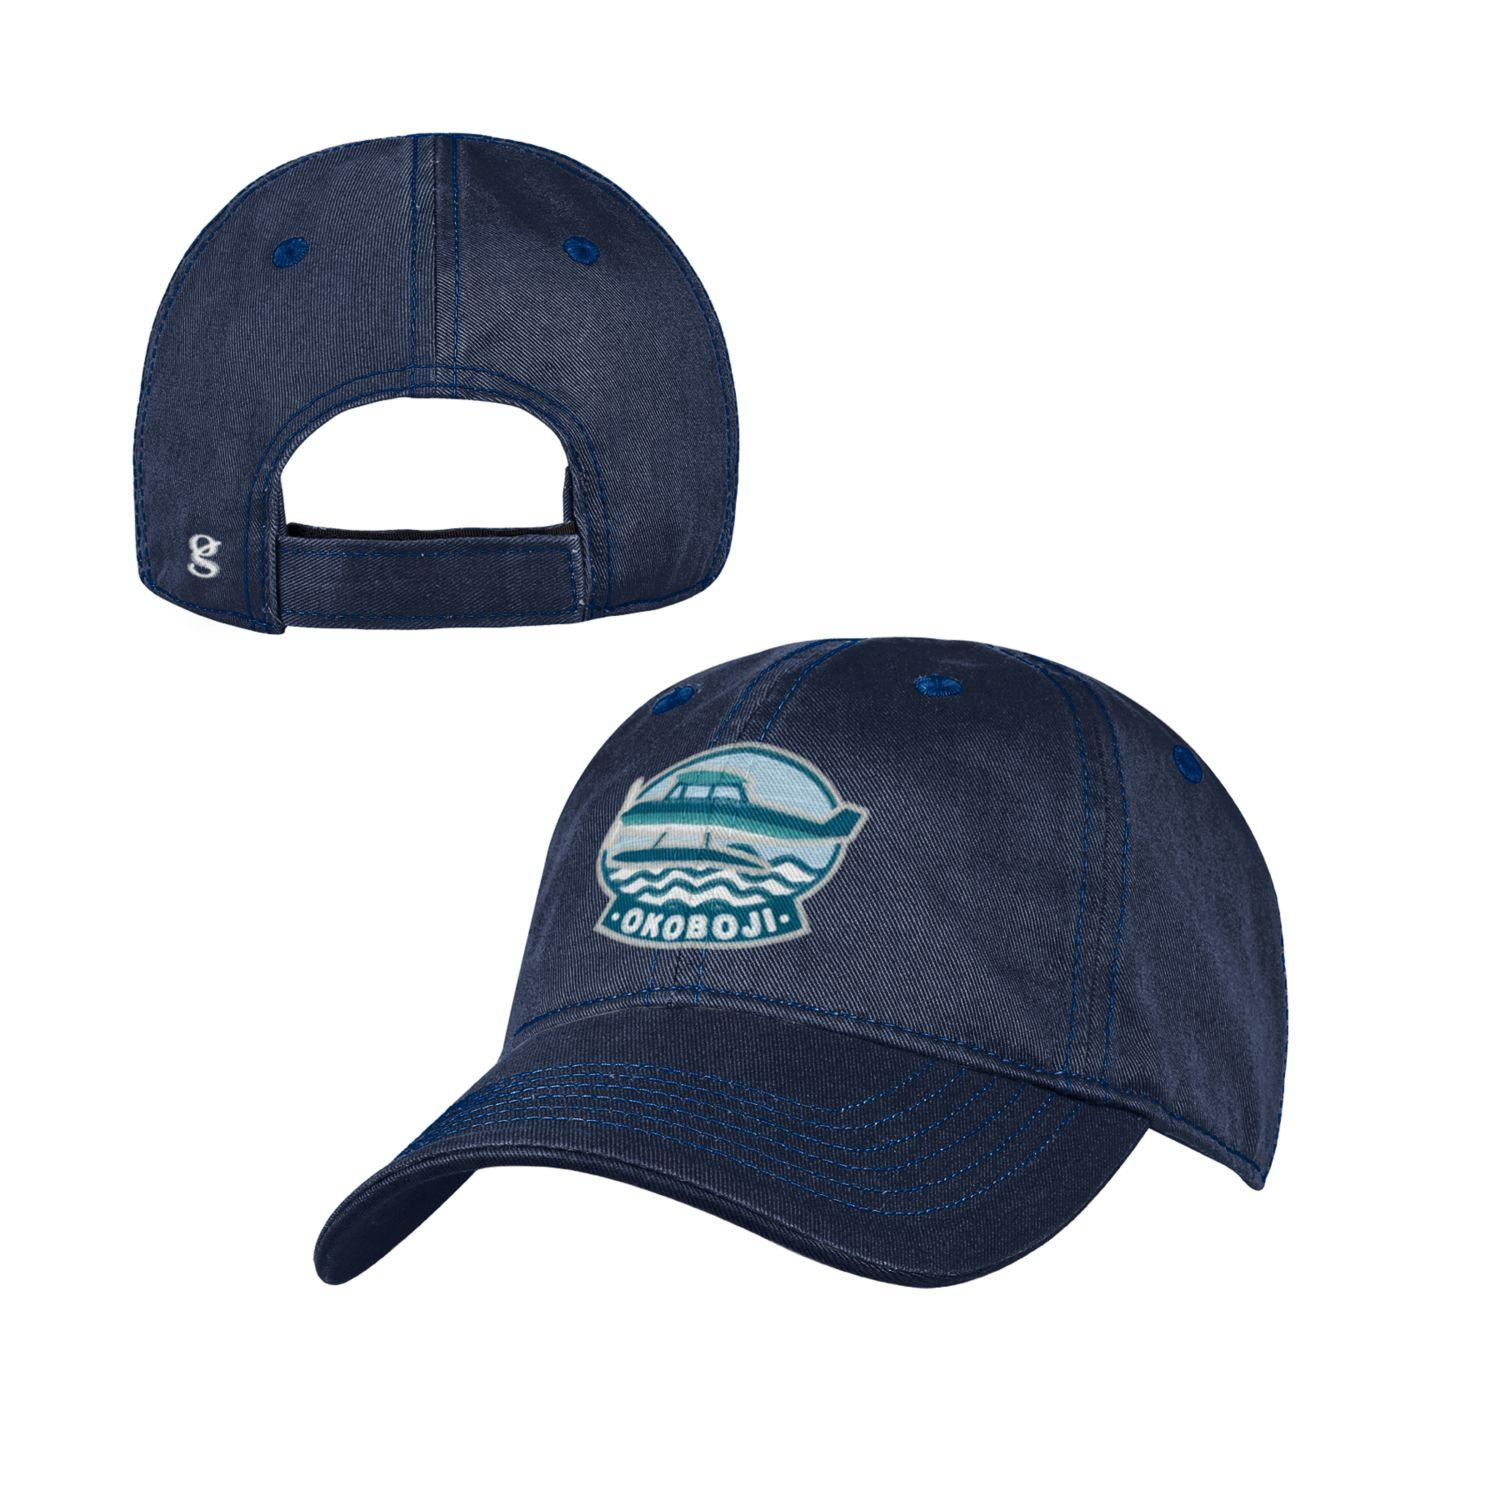 Okoboji Garment Washed Toddler Cap - Marine Navy